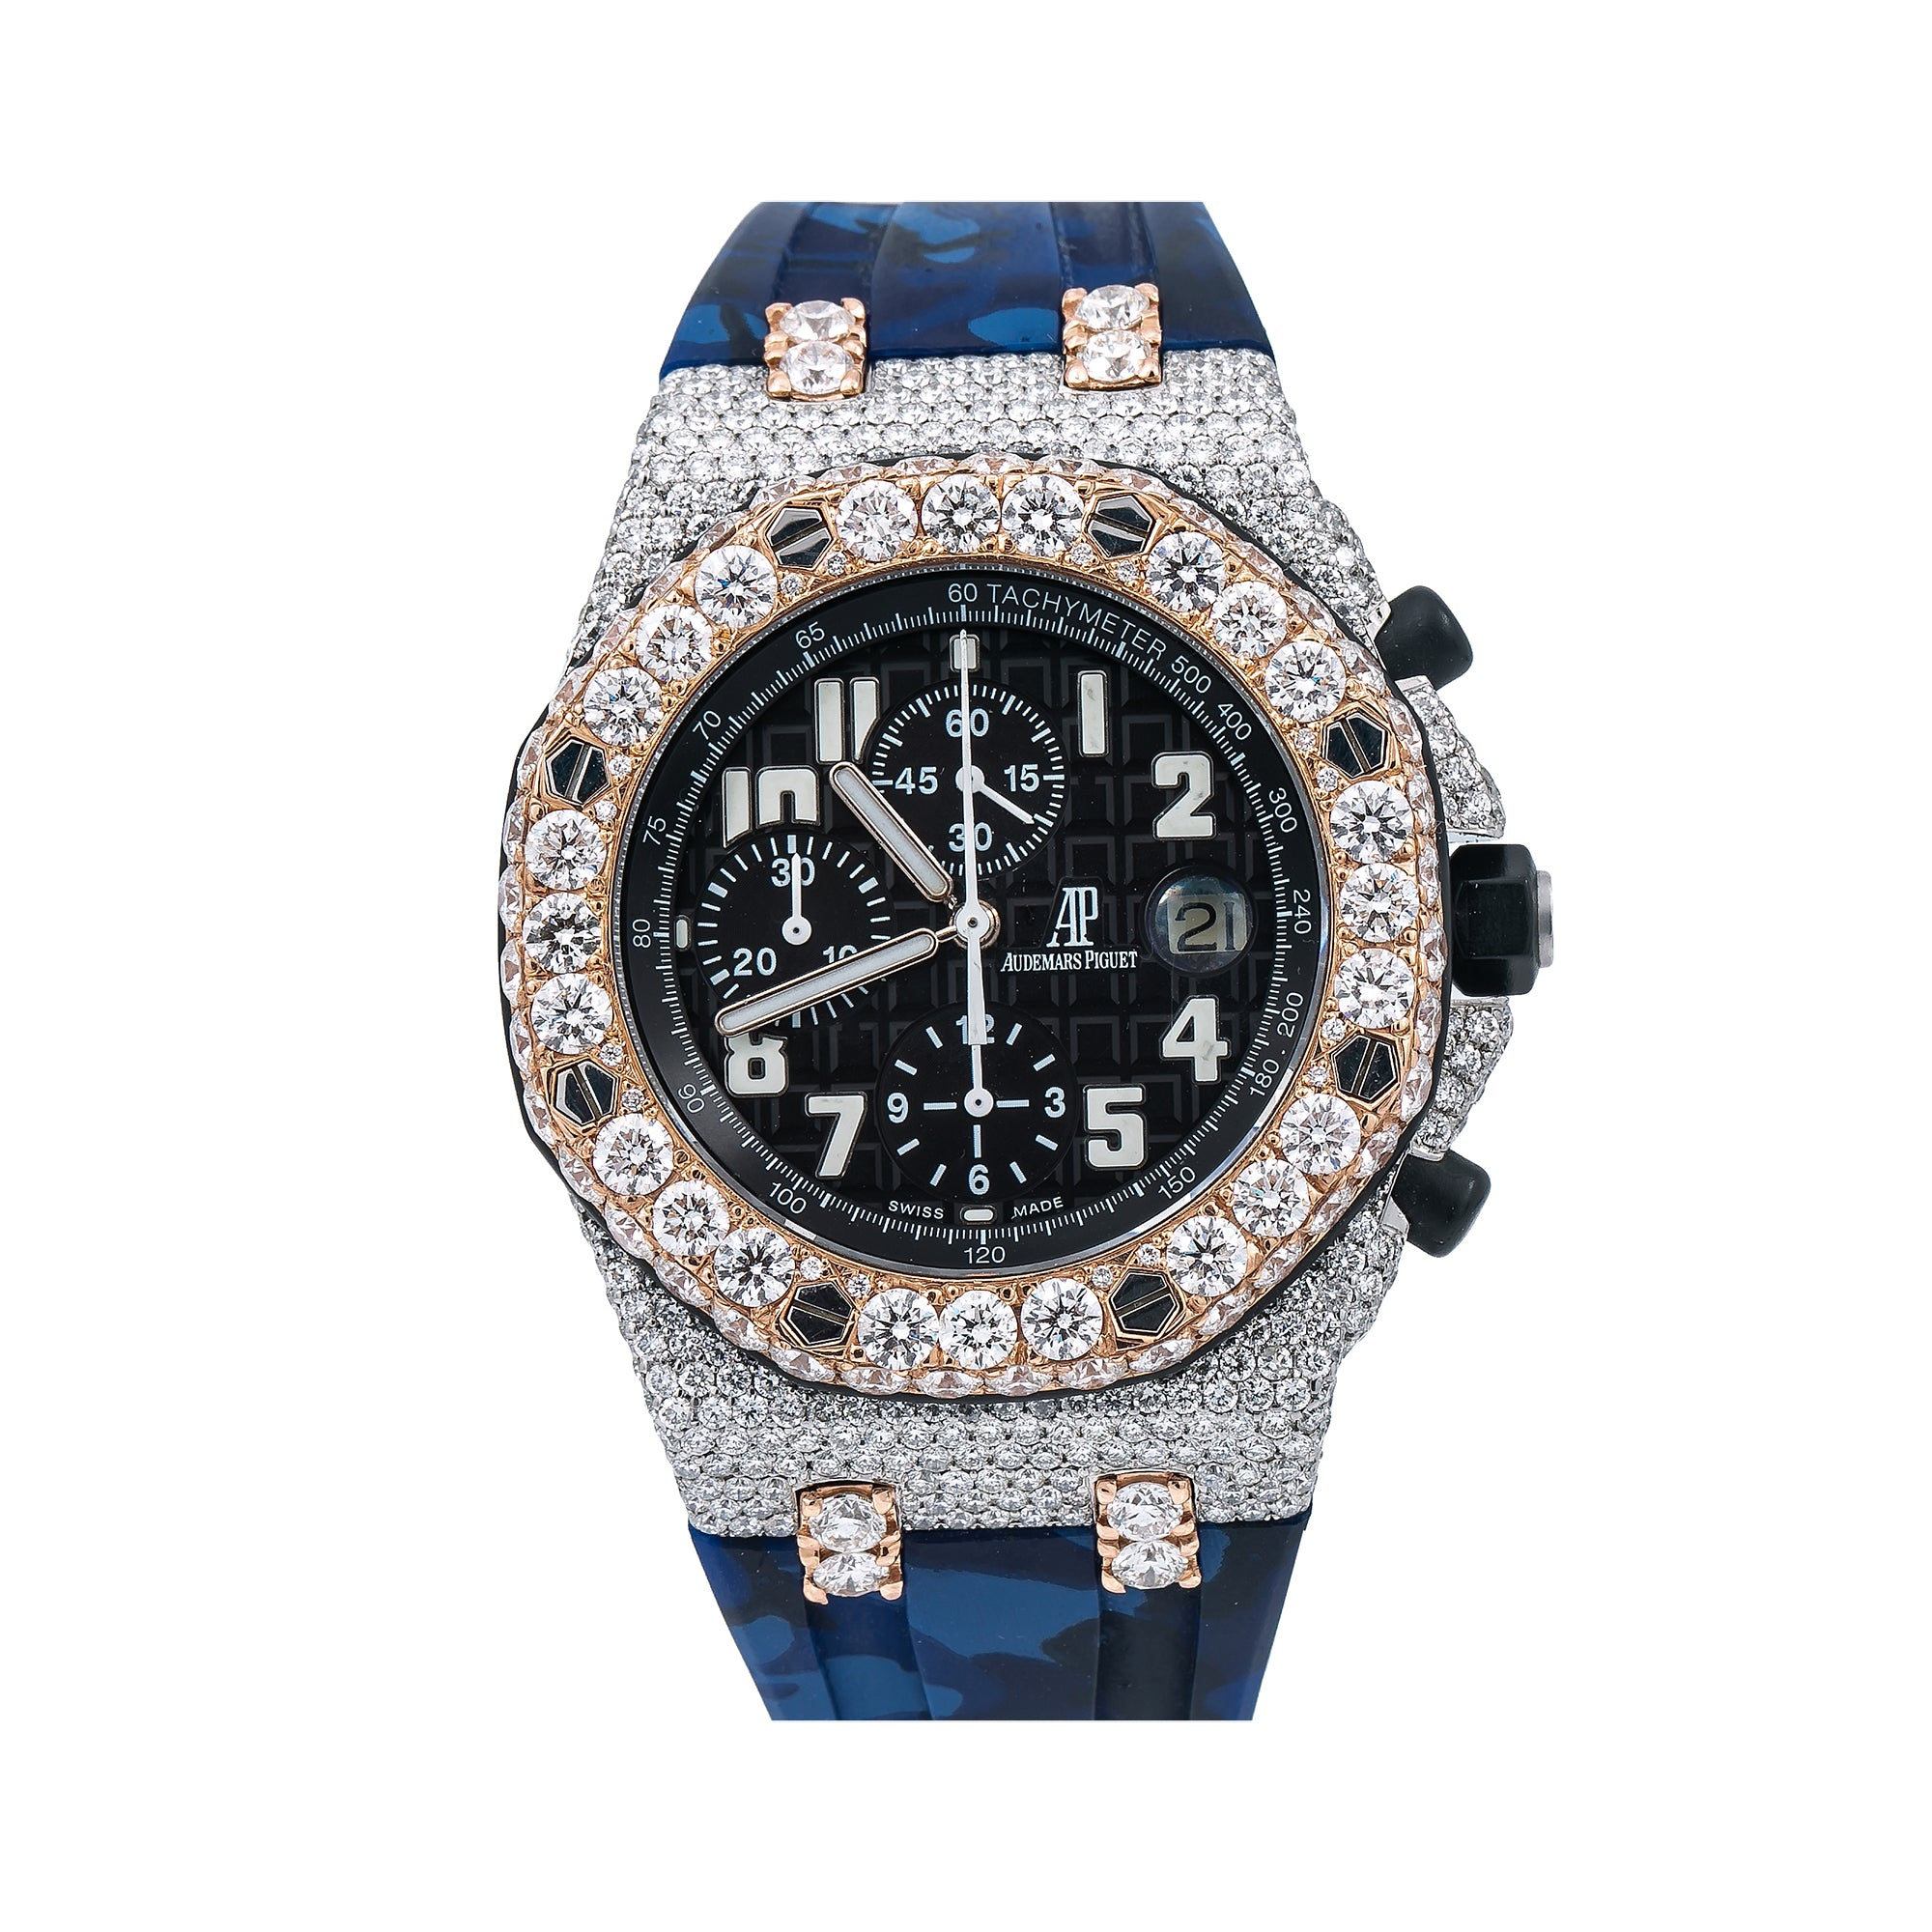 Audemars Piguet Royal Oak Offshore Chronograph 26170ST 42MM Black Dial With 23.50 CT Diamonds